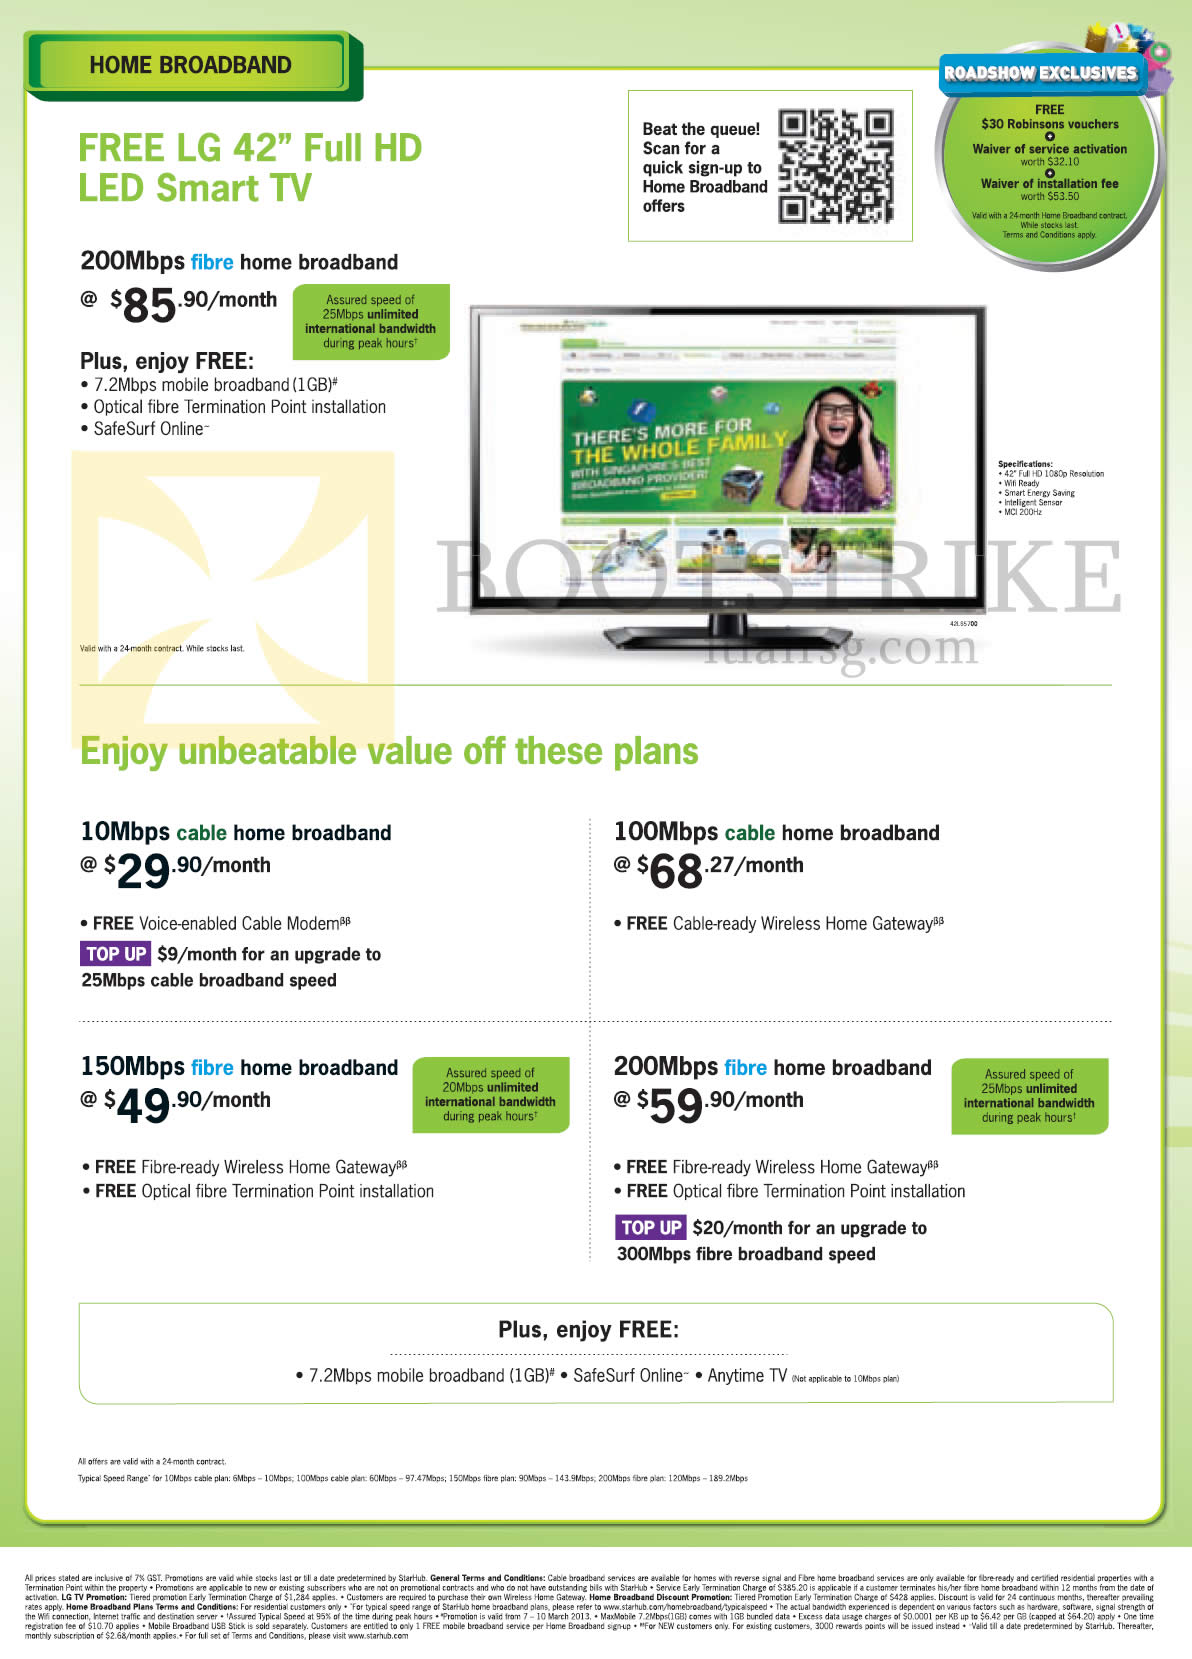 IT SHOW 2013 price list image brochure of Starhub Broadband Fibre 200Mbps Free LG 42 Full HD LED Smart TV, 100Mbps Cable, 10Mbps, 150Mbps Fibre, 200Mbps Fibre